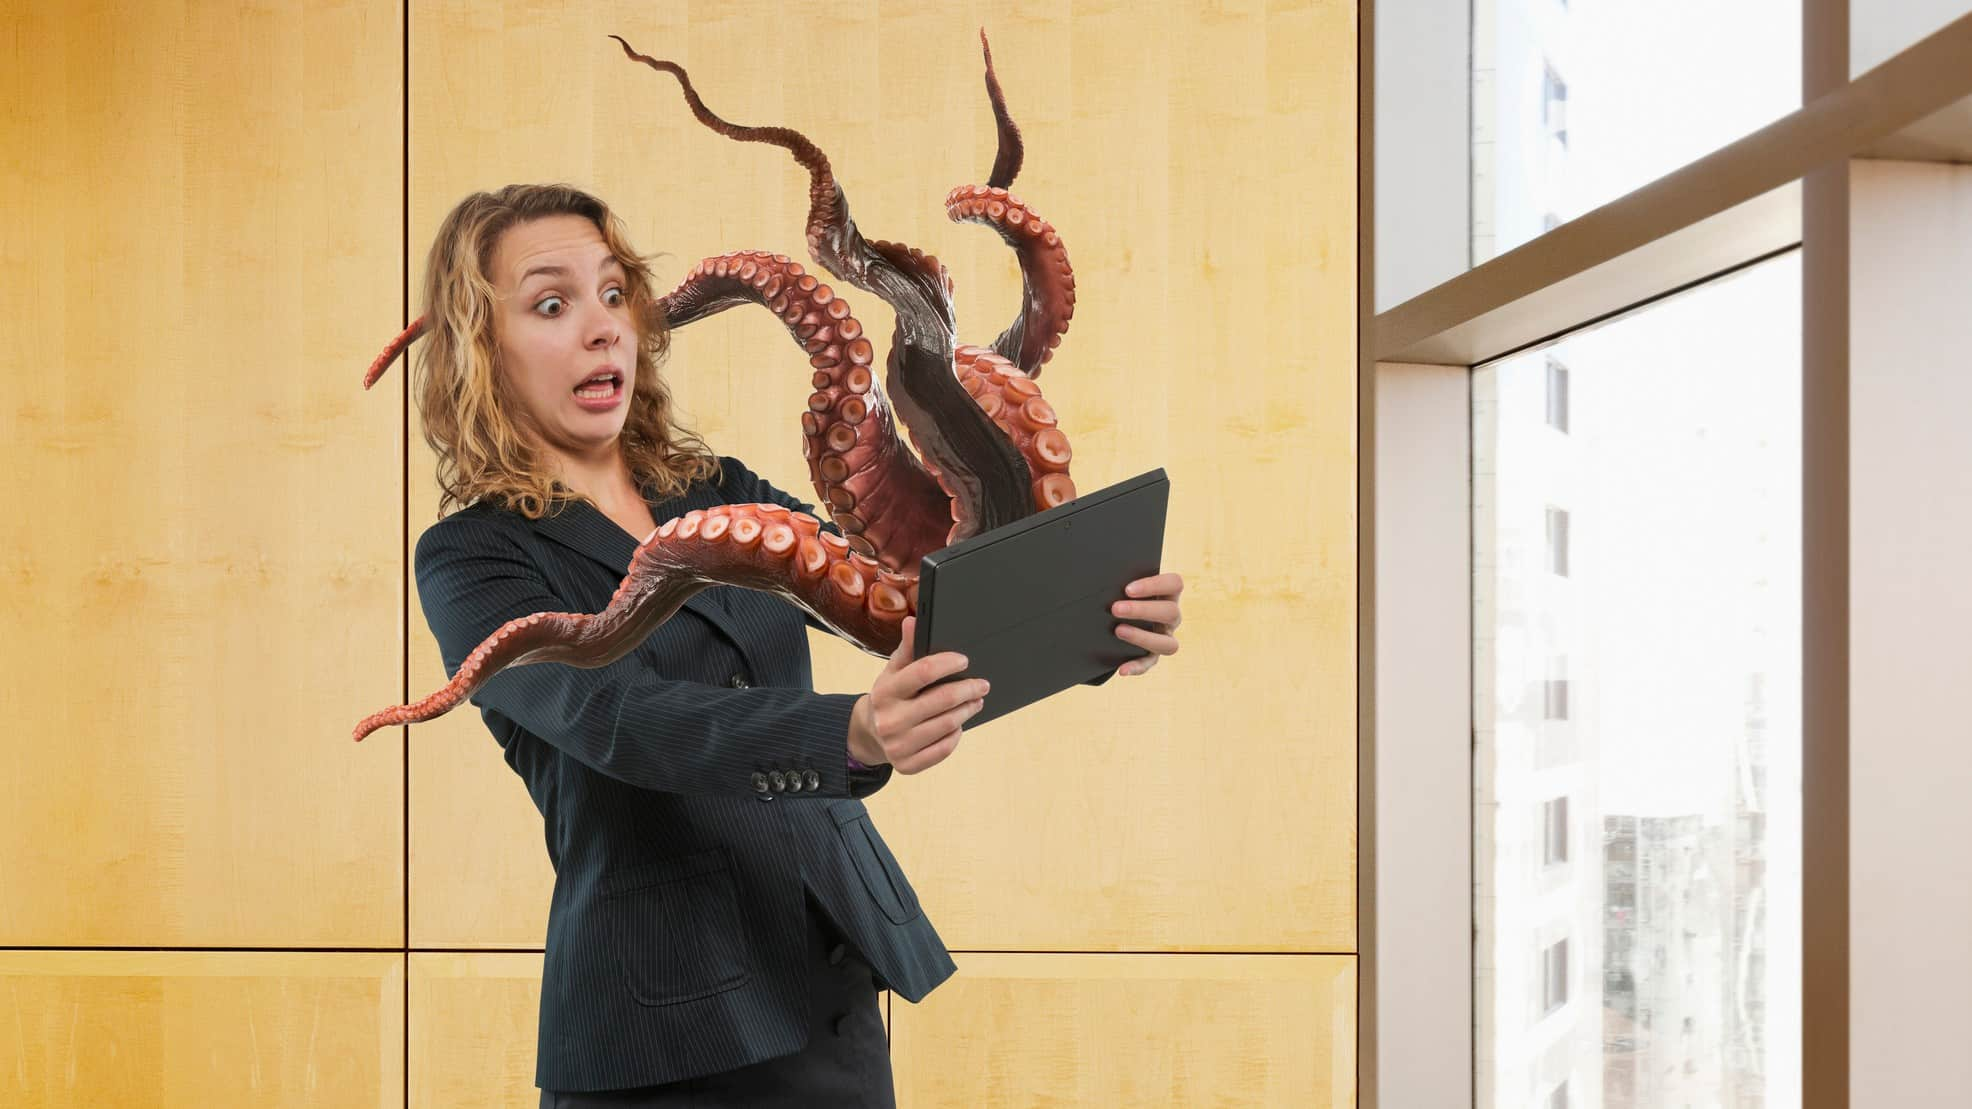 cybersecurity shares represented by octopus reaching out of computer screen towards woman